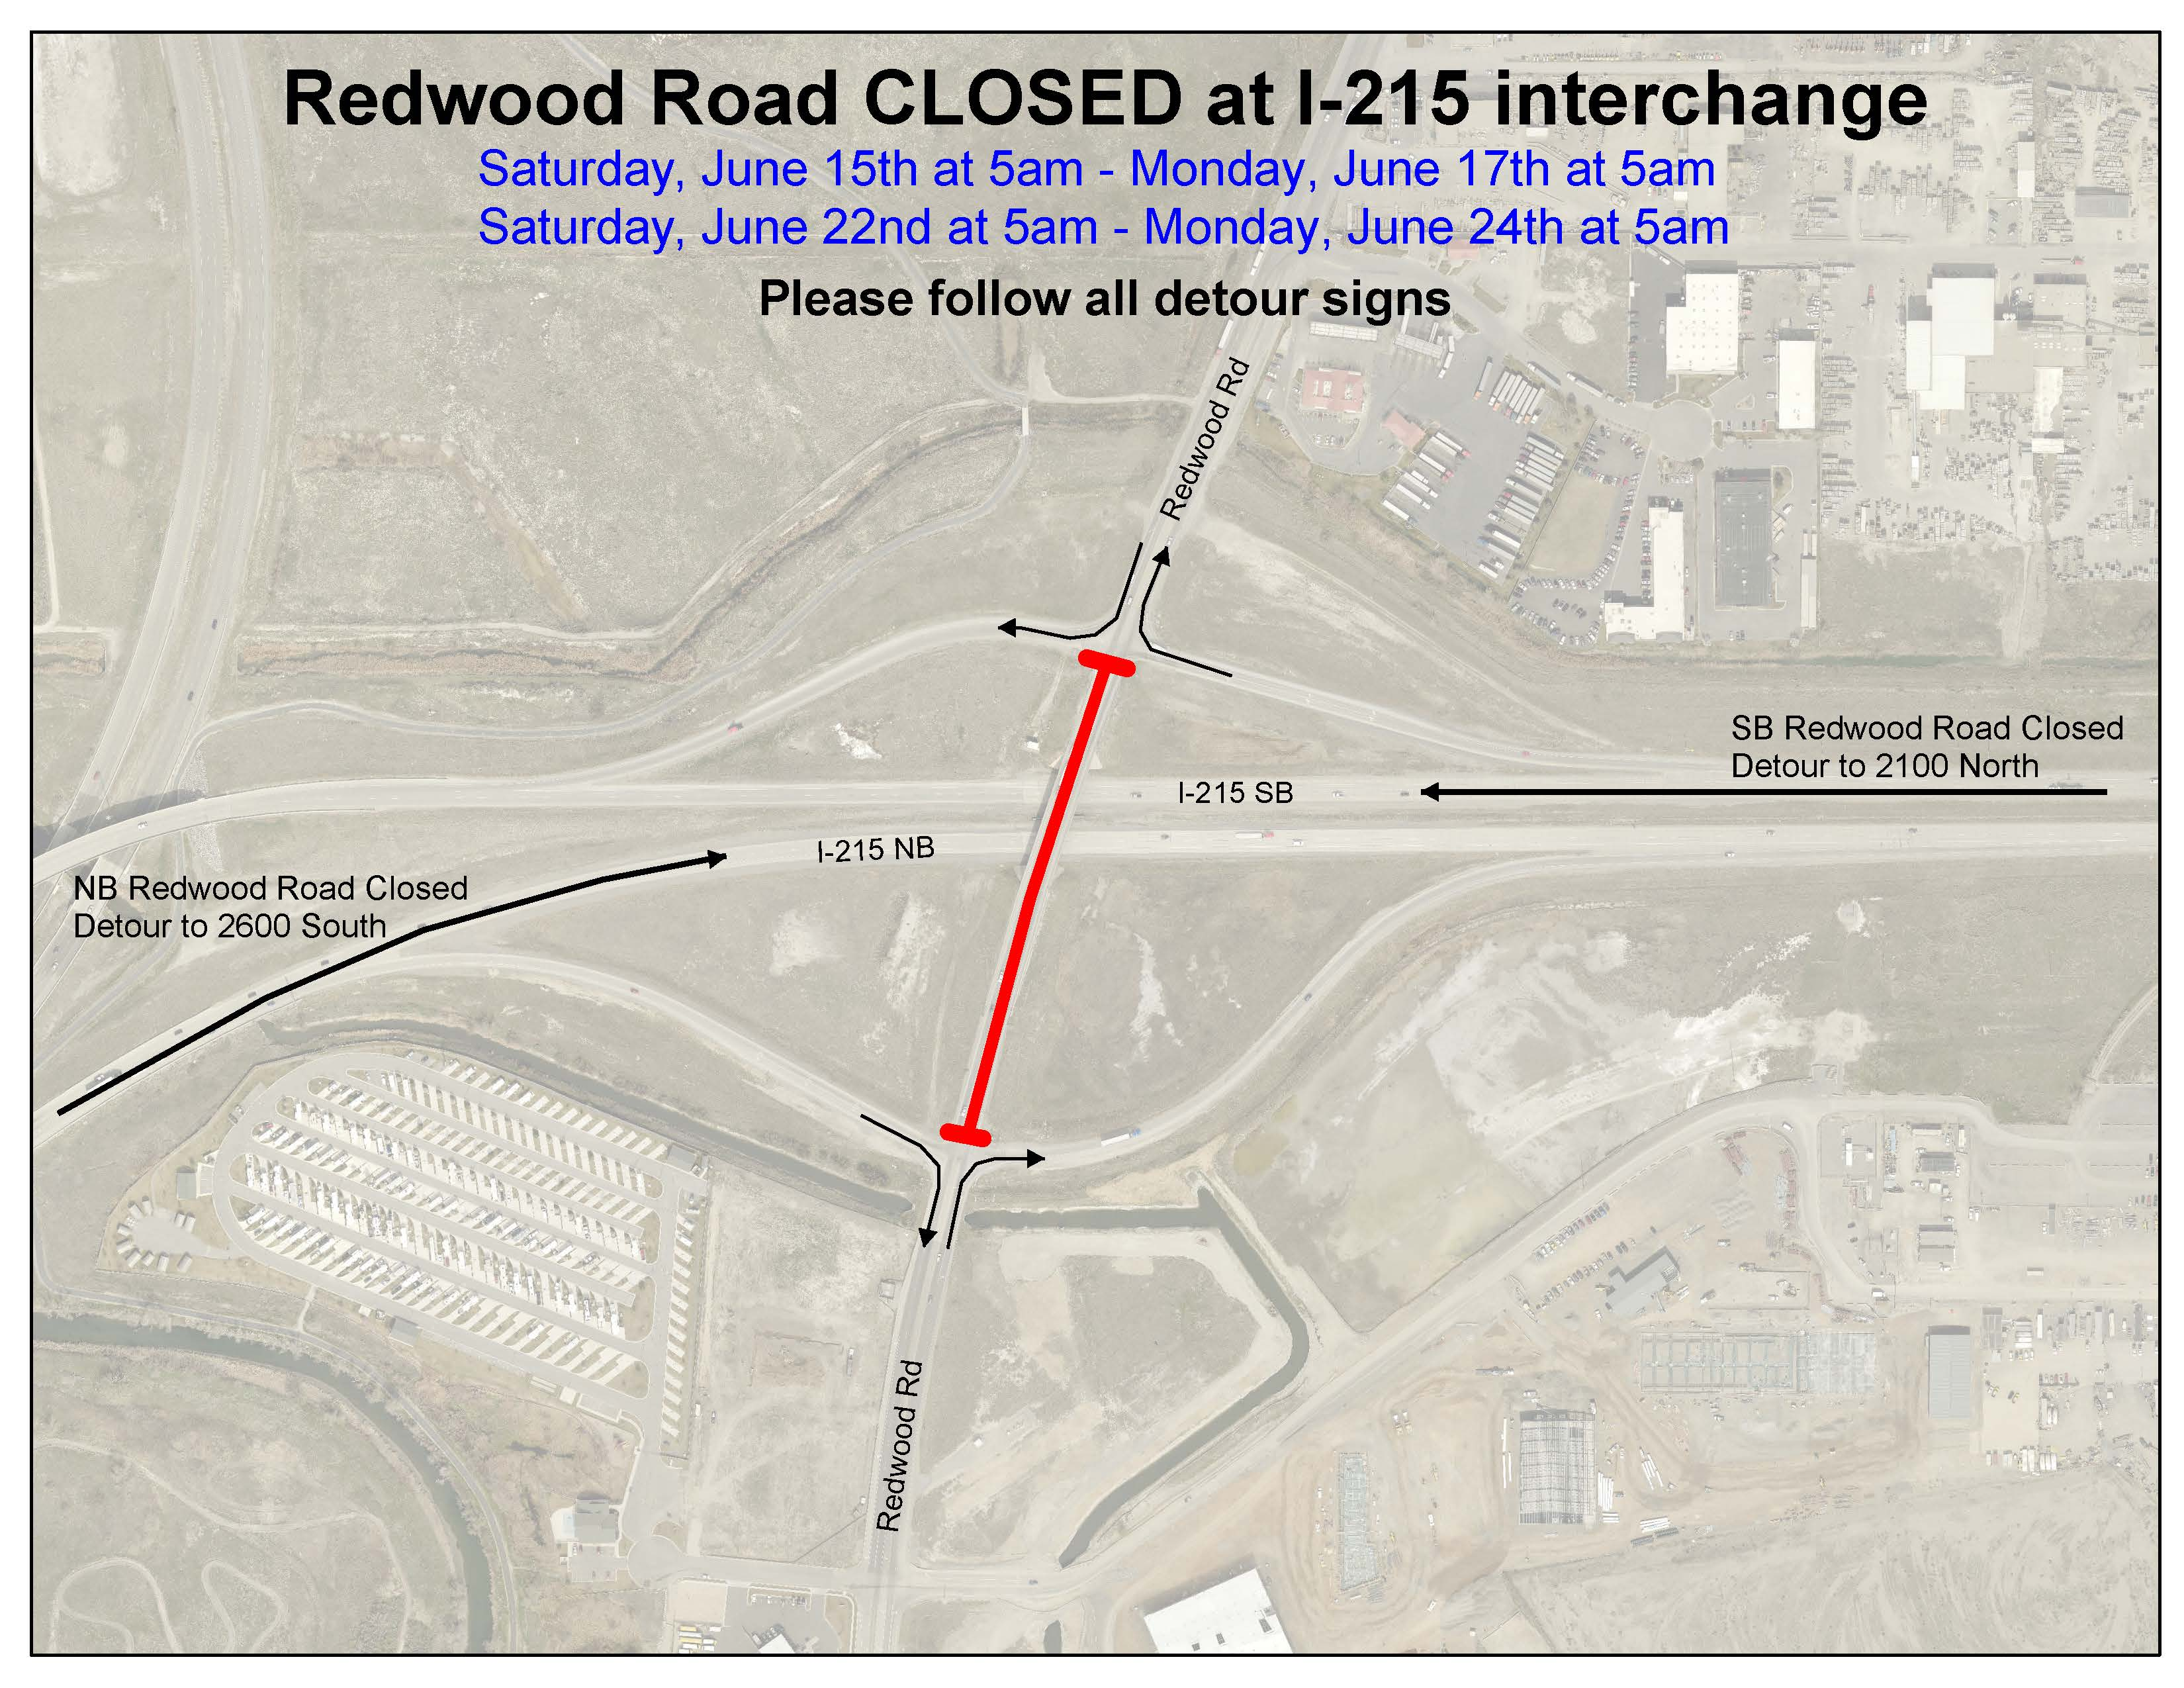 6-12-19 Redwood Rd closure map corrected times both weekends